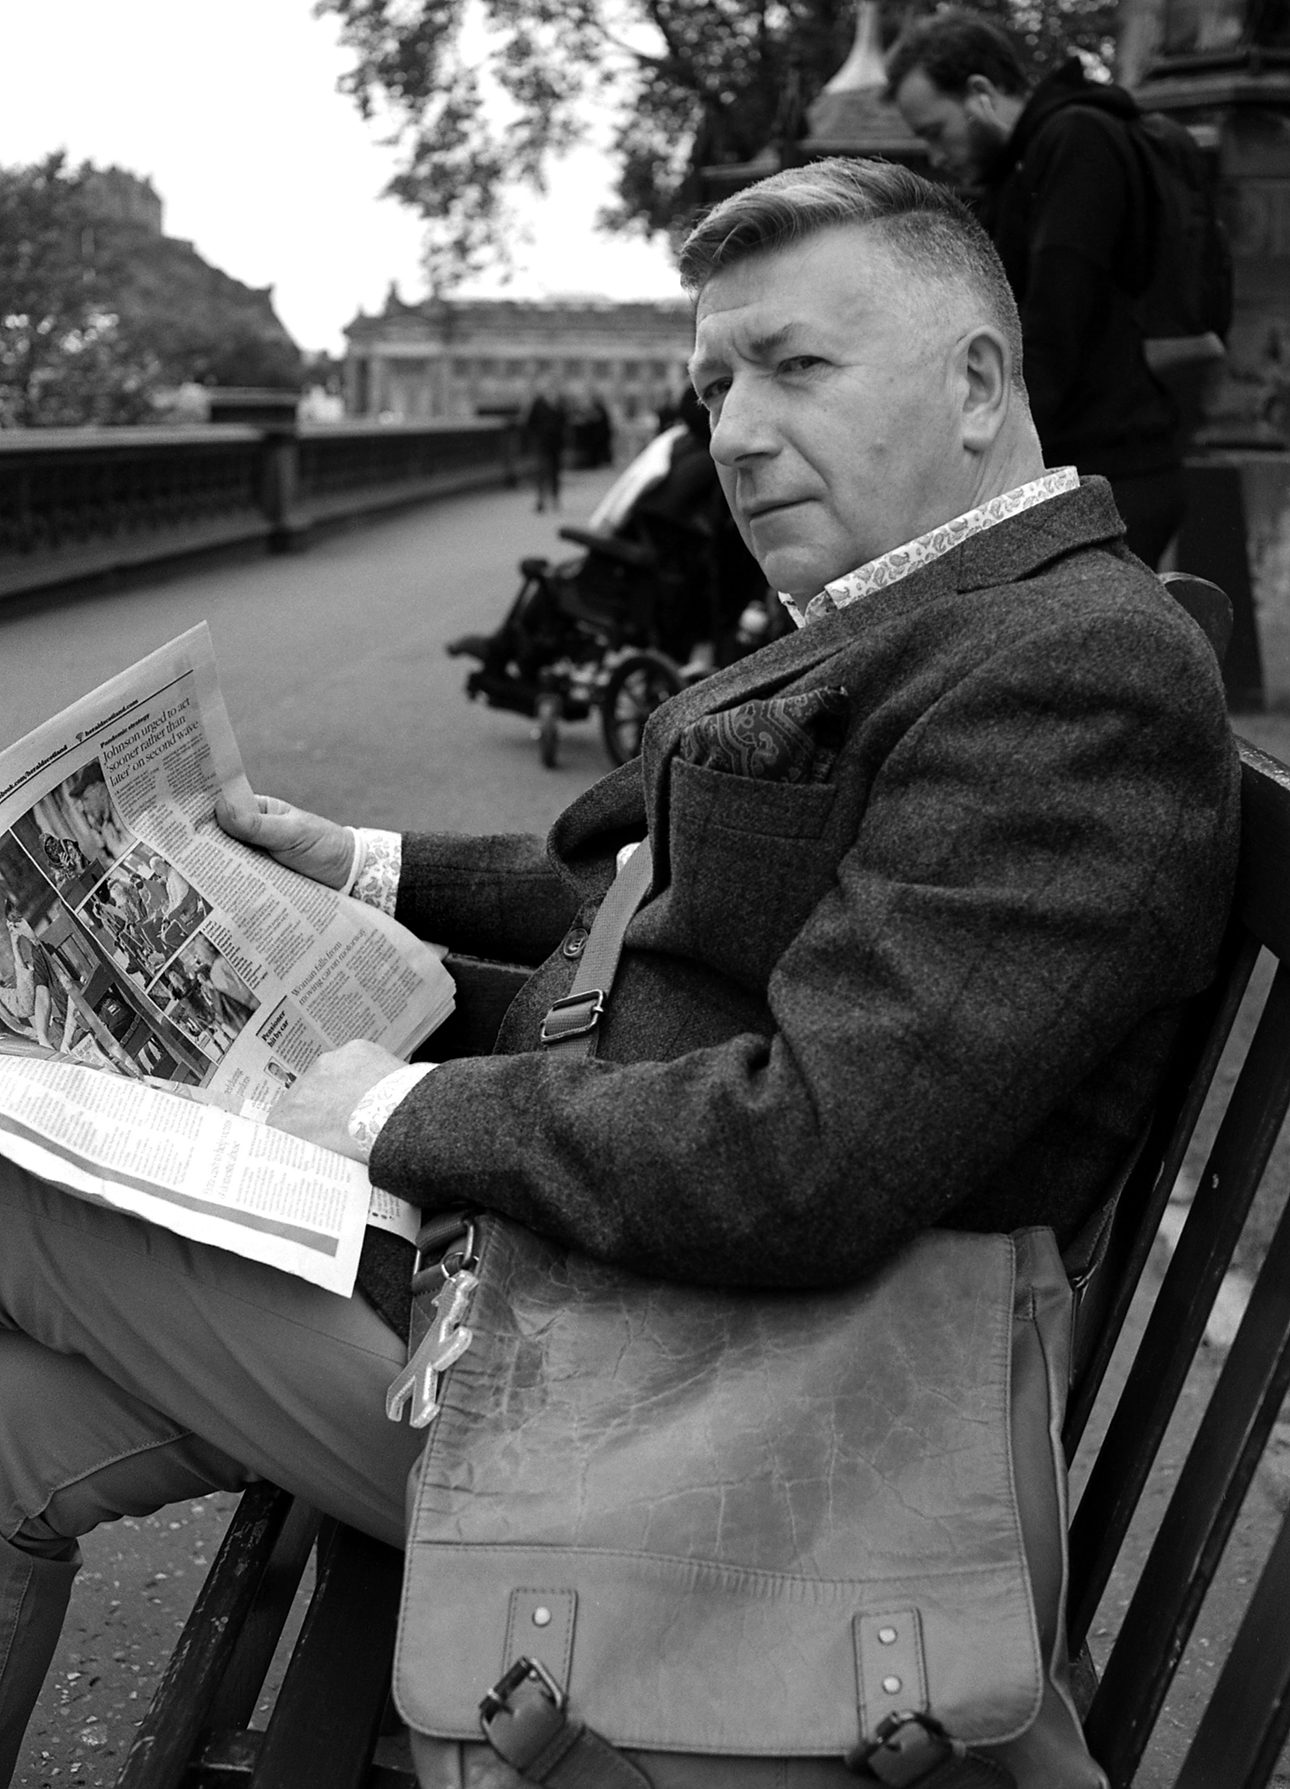 portrait of man reeding paprt in Edinburgh shot on ILFORD black and white film by Keith Moss